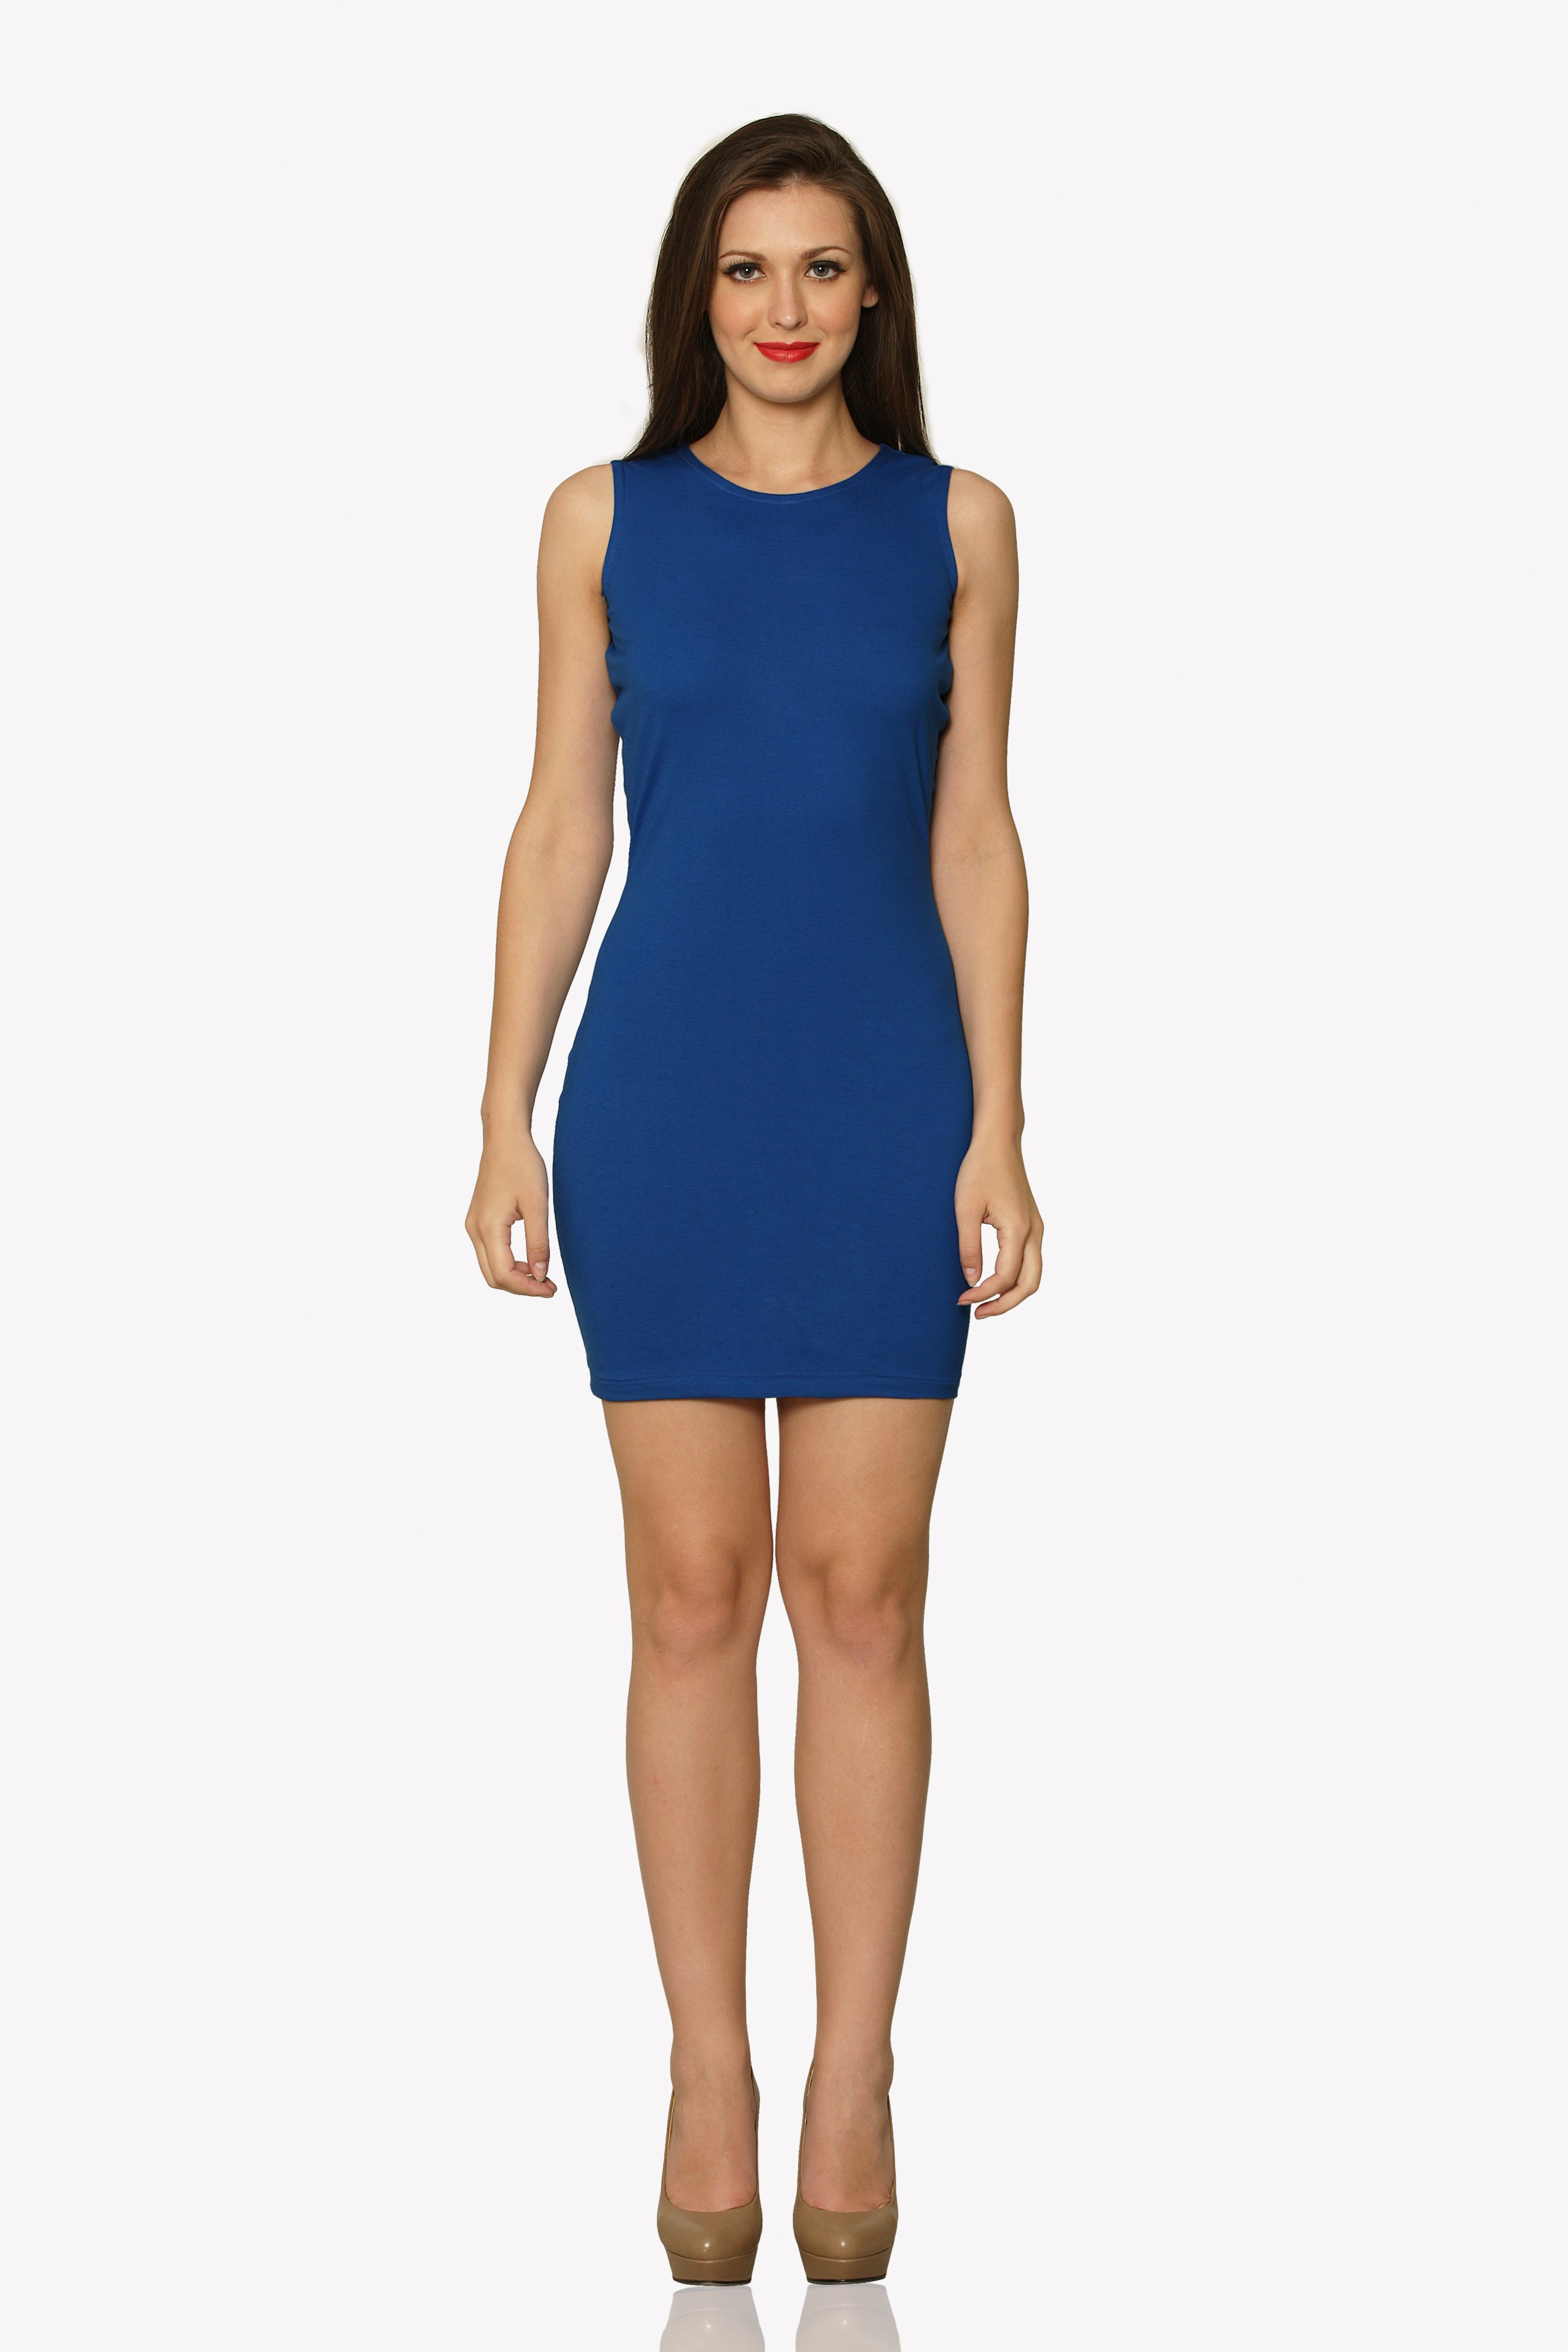 ... super cute and girly bodycon dress with a heart cut out detail at the